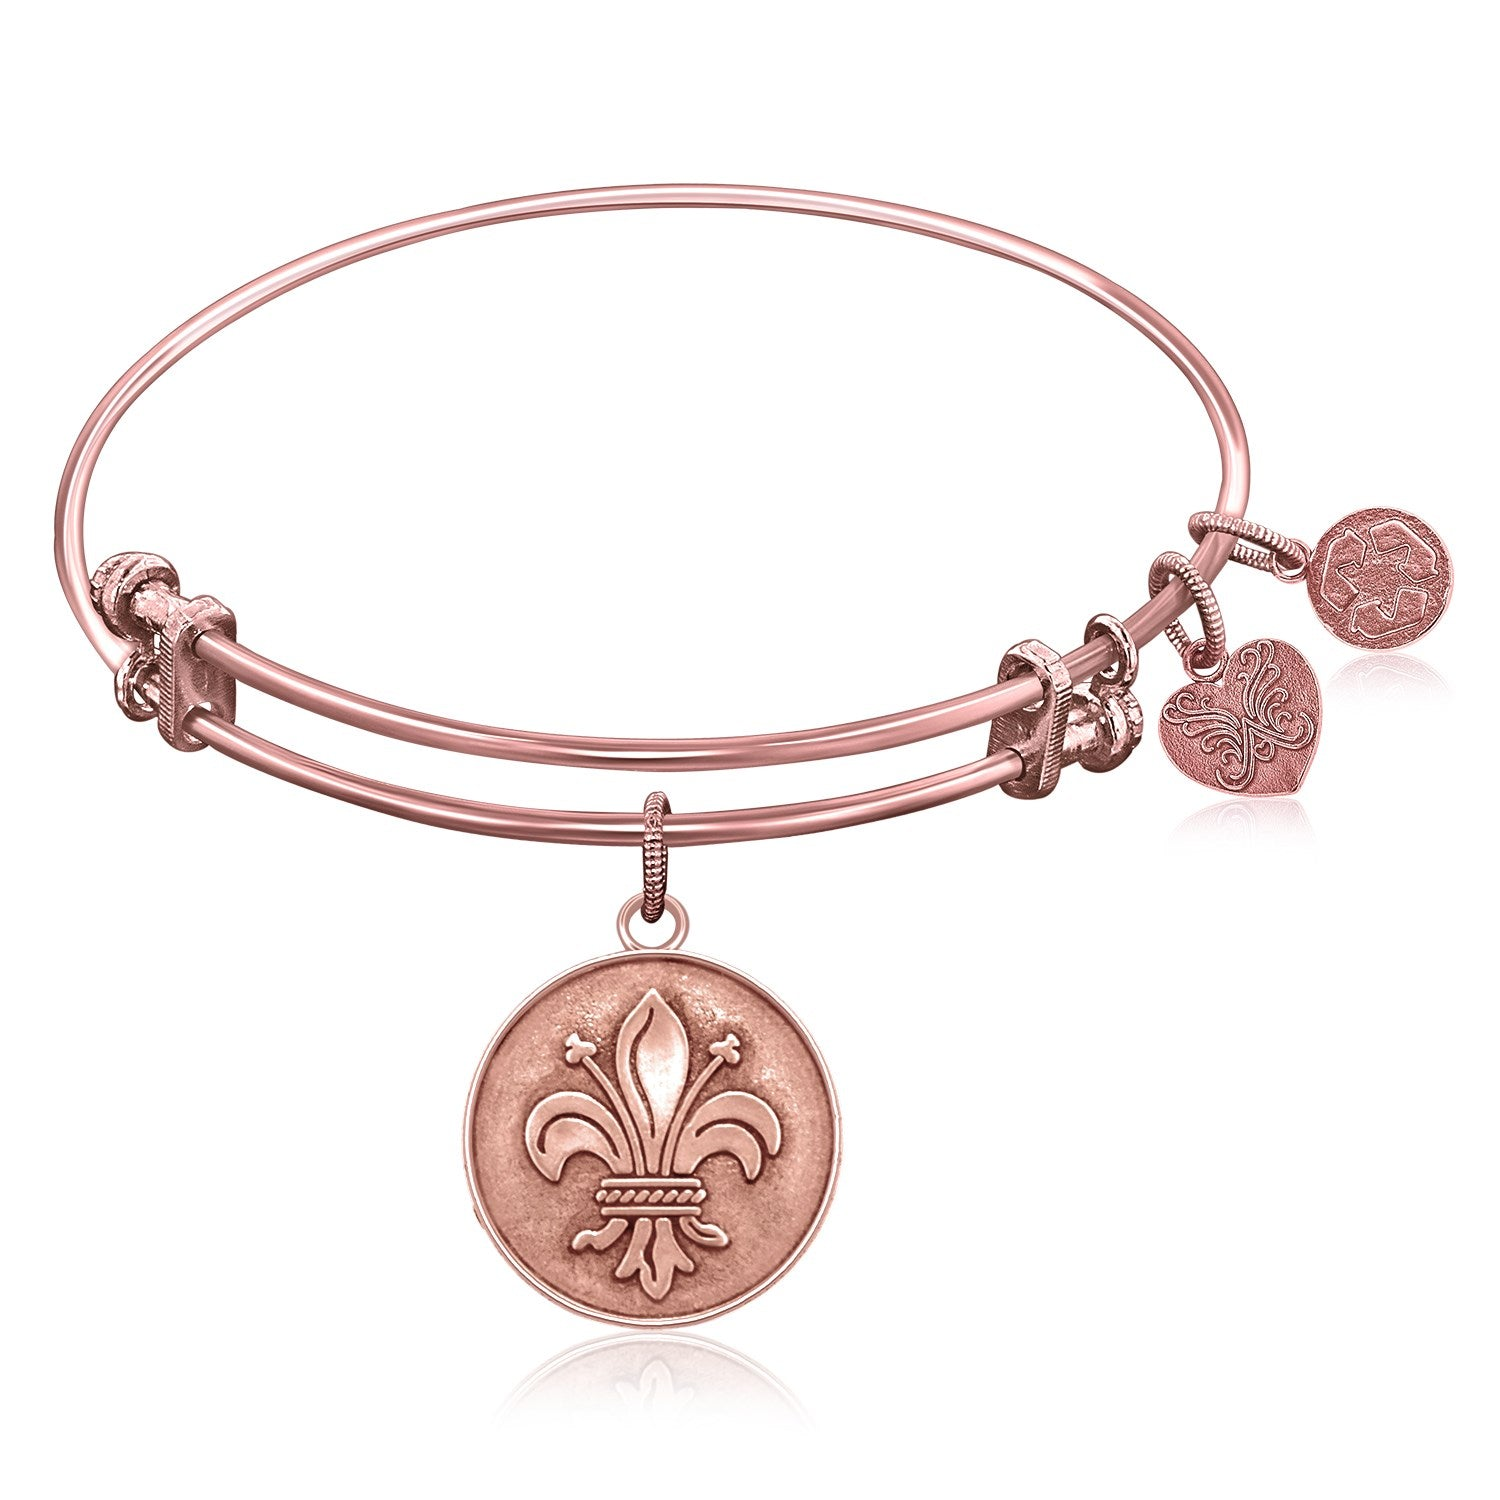 Expandable Bangle in Pink Tone Brass with Fleur-De-Lis Symbol